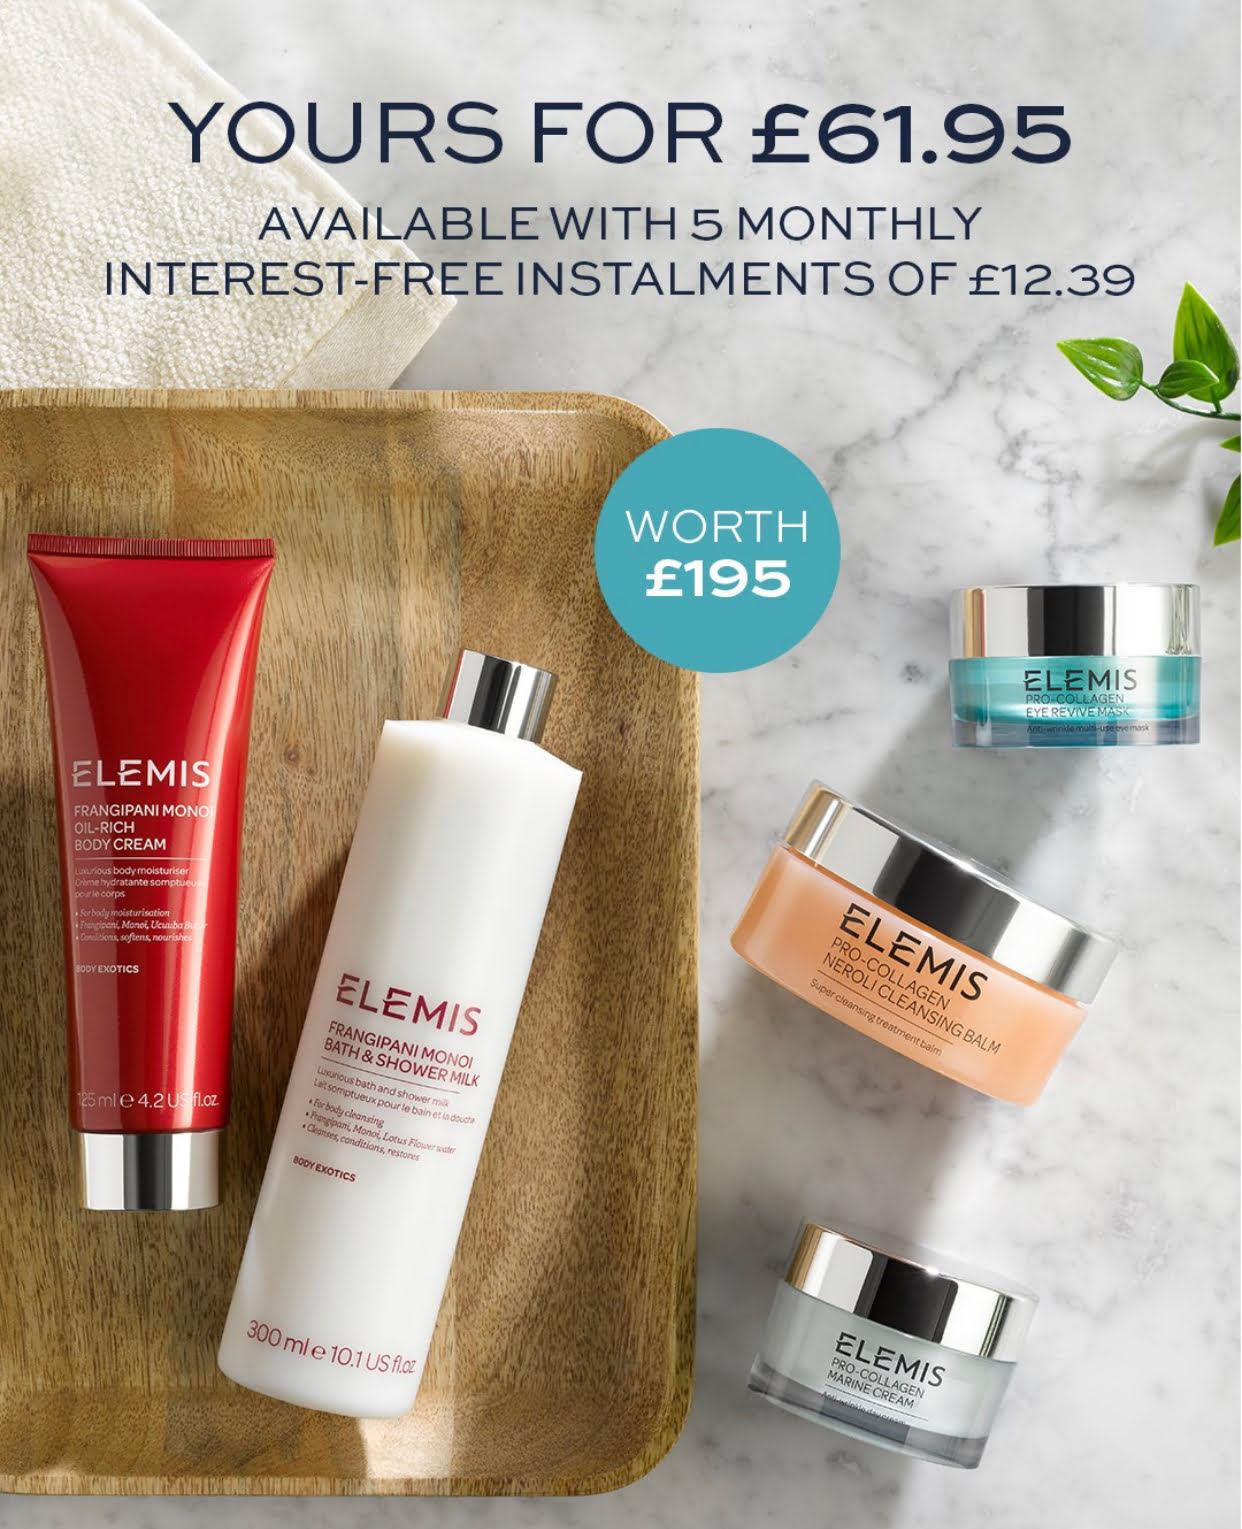 Elemis Pro-Collagen Anti-Ageing Hydrate & Revive 5 Piece Collection